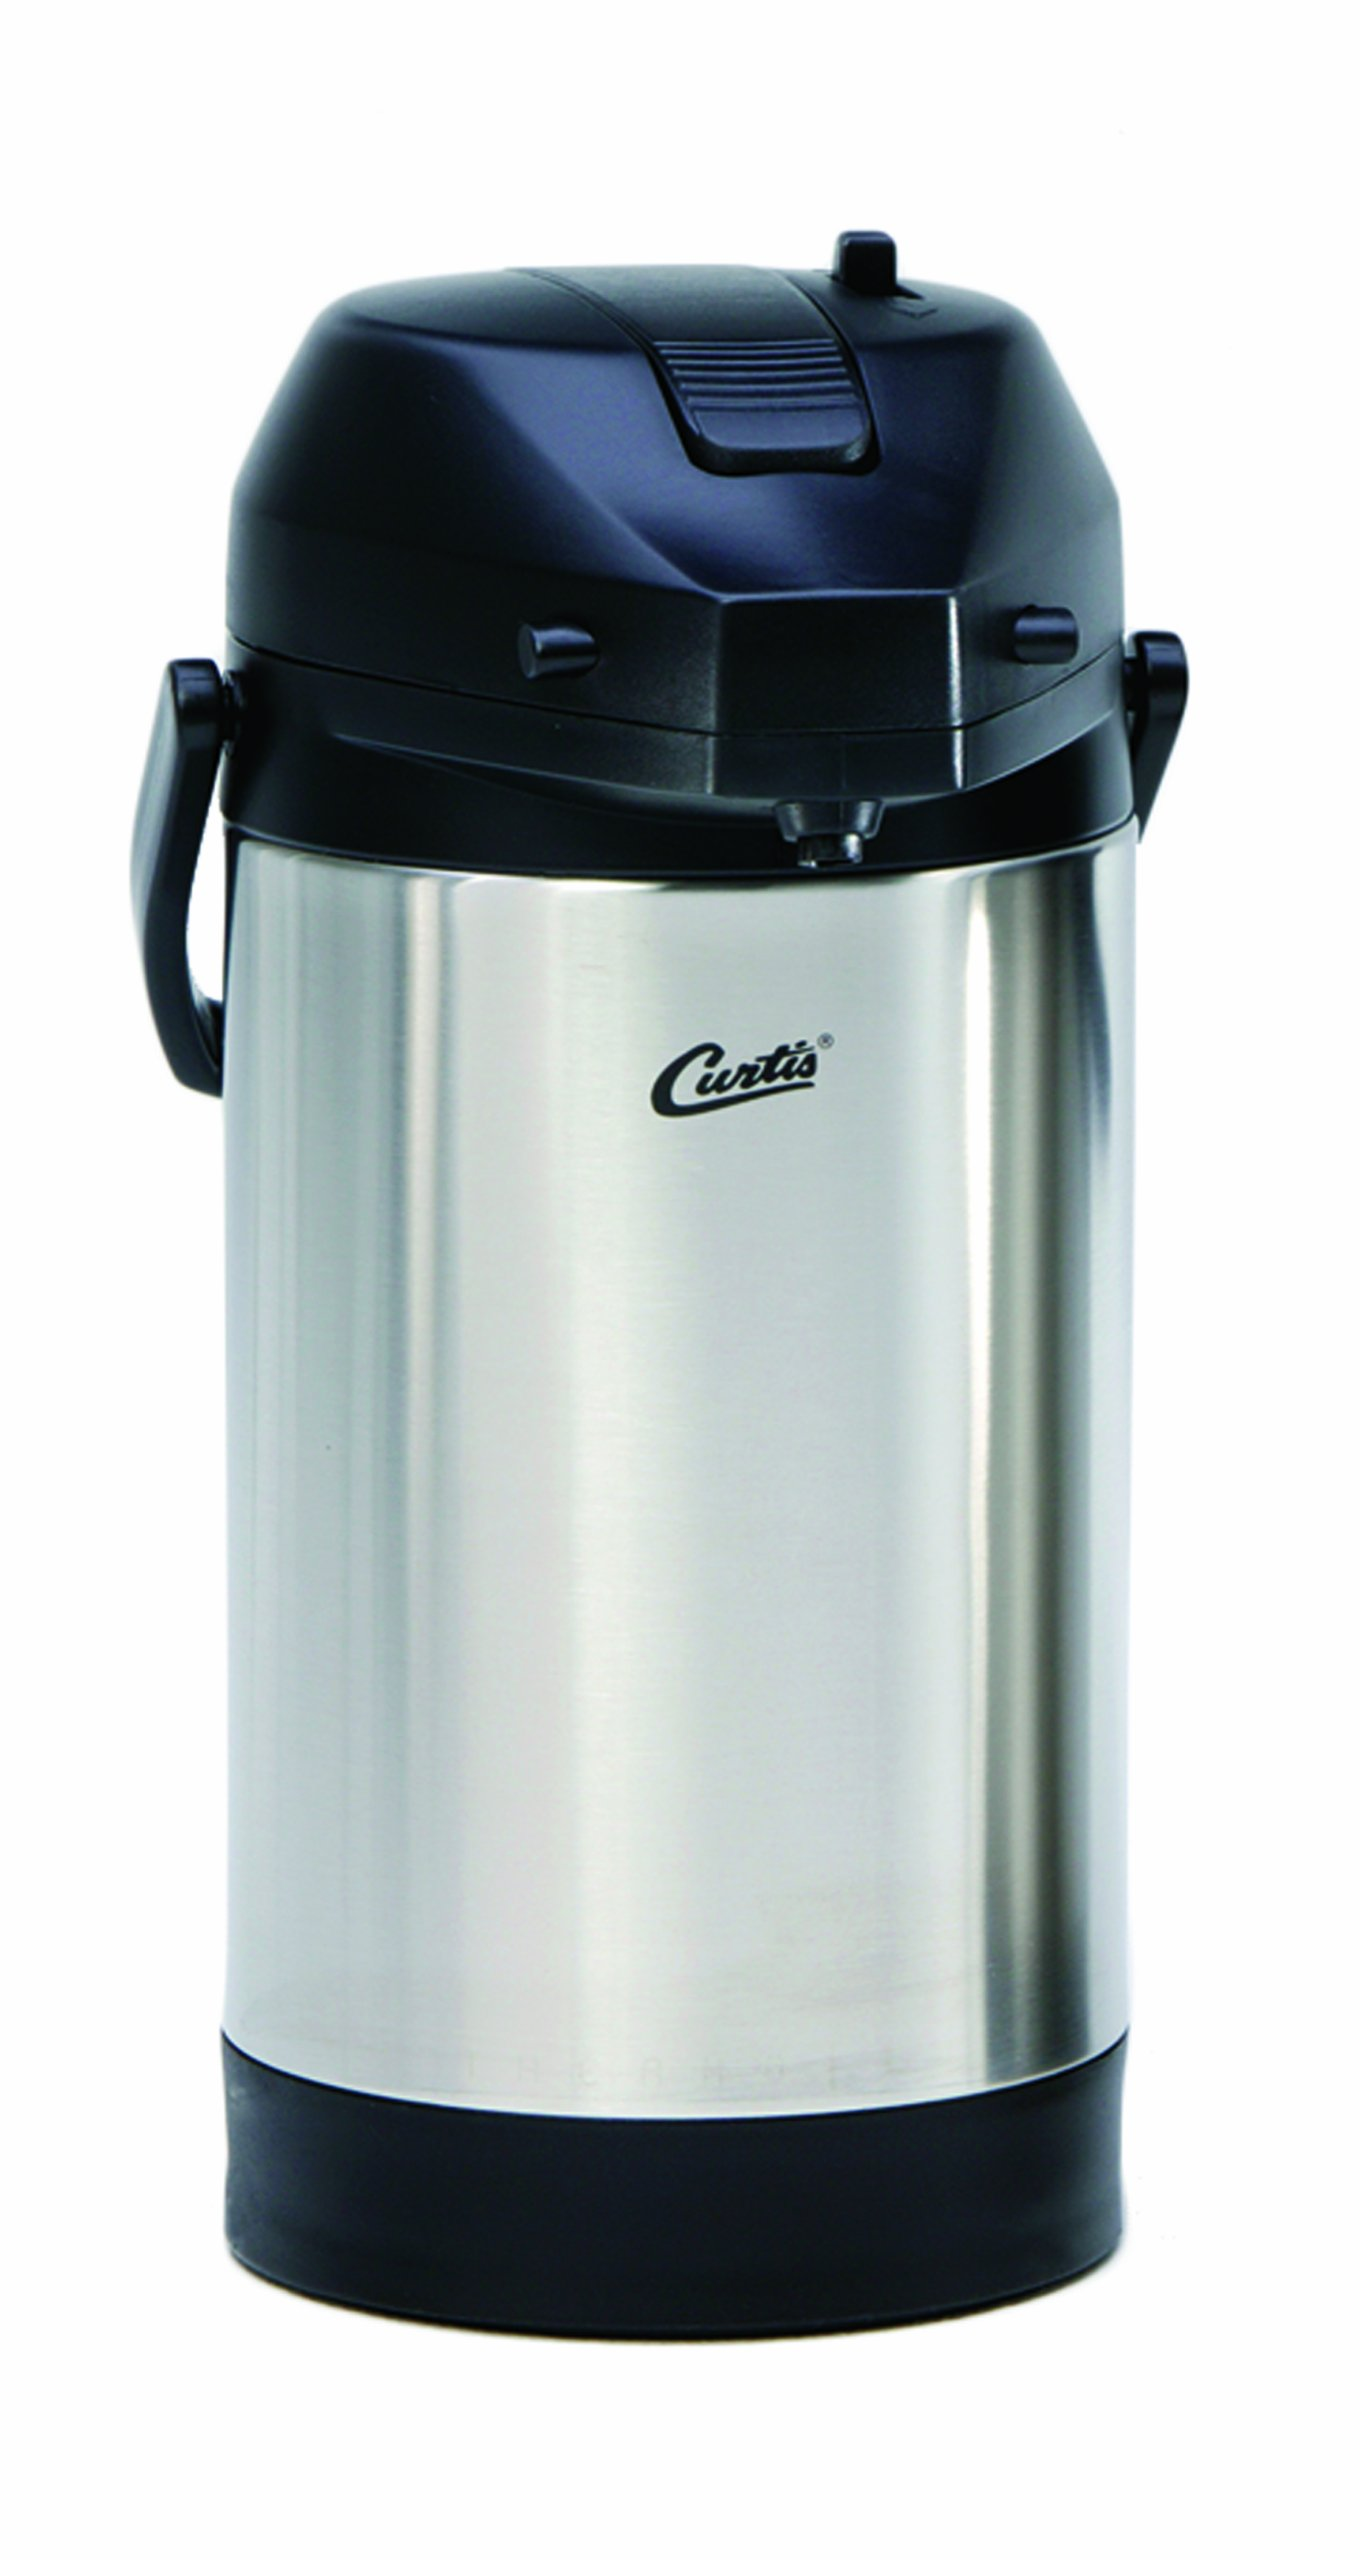 Wilbur Curtis Thermal Dispenser Air Pot, 3.0L S.S. Body S.S. Liner Lever Pump - Commercial Airpot Pourpot Beverage Dispenser - TLXA3001S000 (Each) by Wilbur Curtis